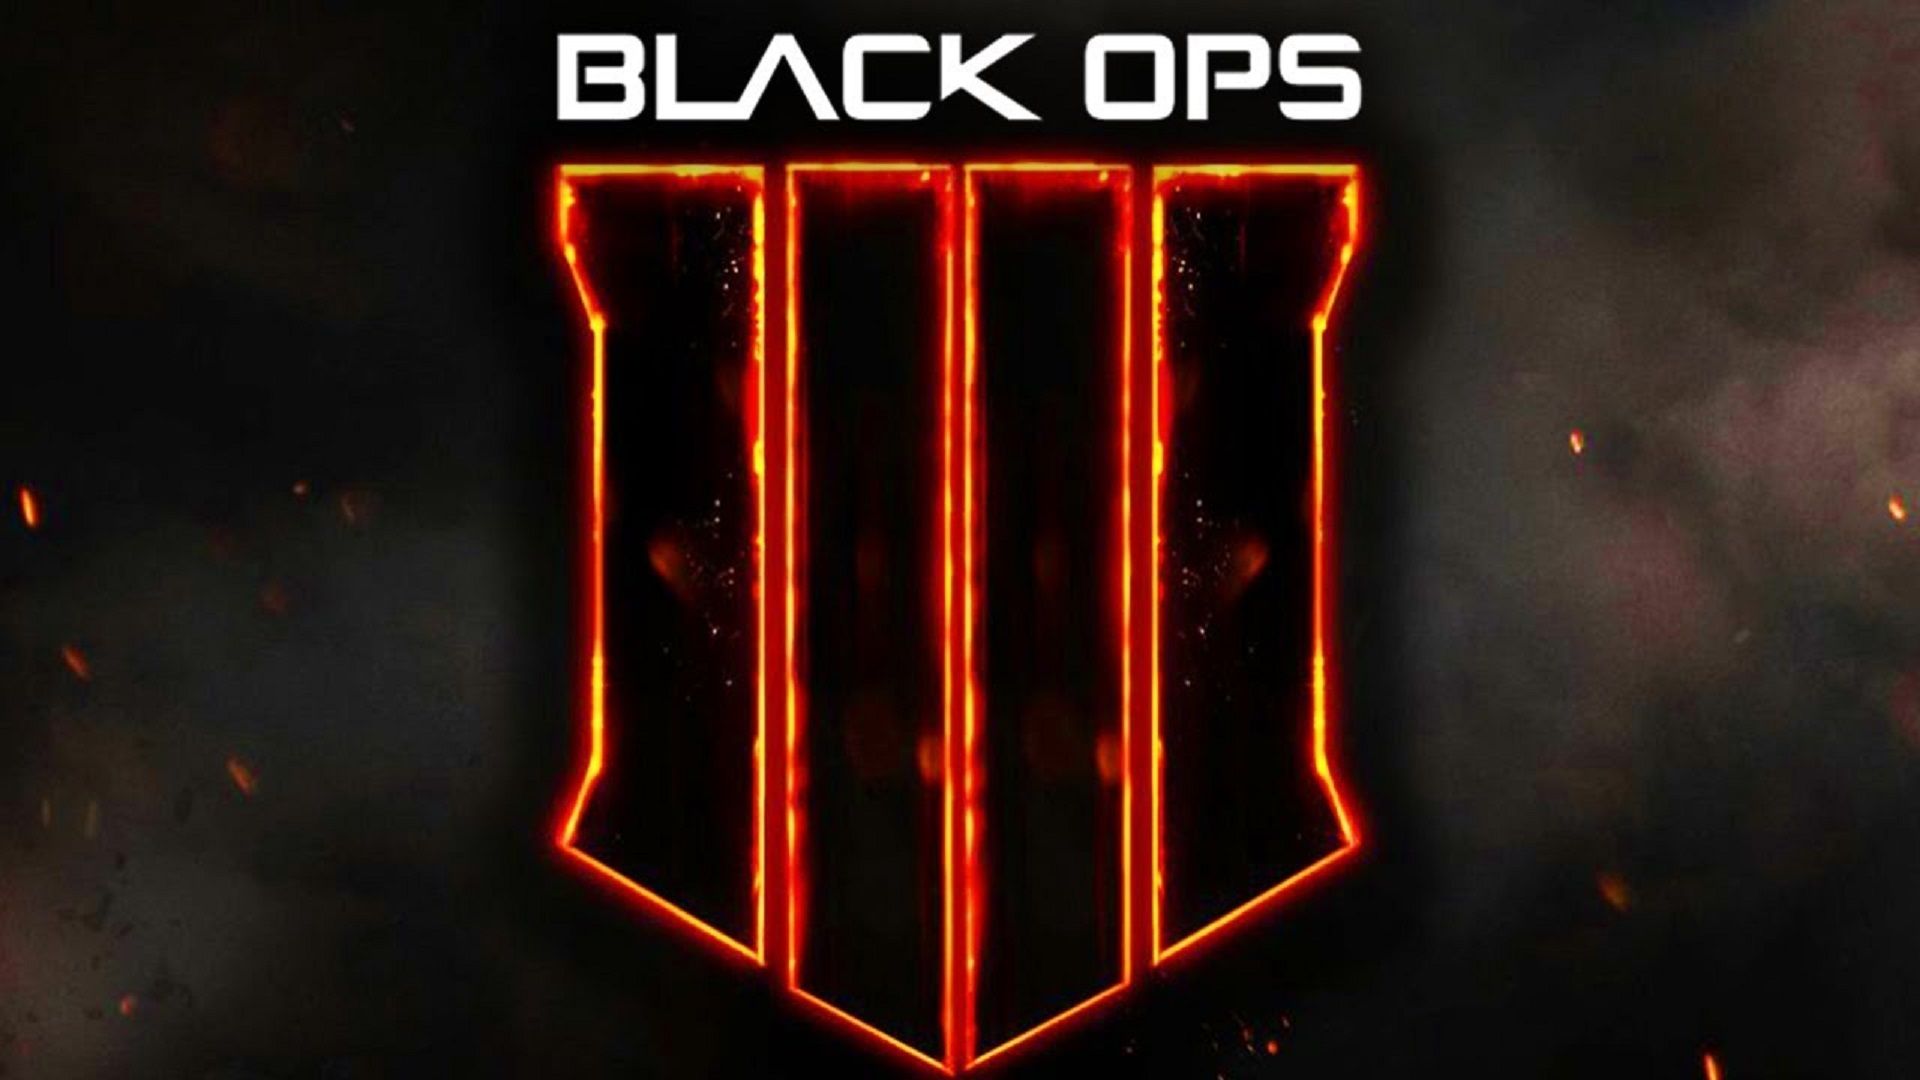 Call of duty cod black ops 4 wallpapers read games - Black ops 4 logo wallpaper ...